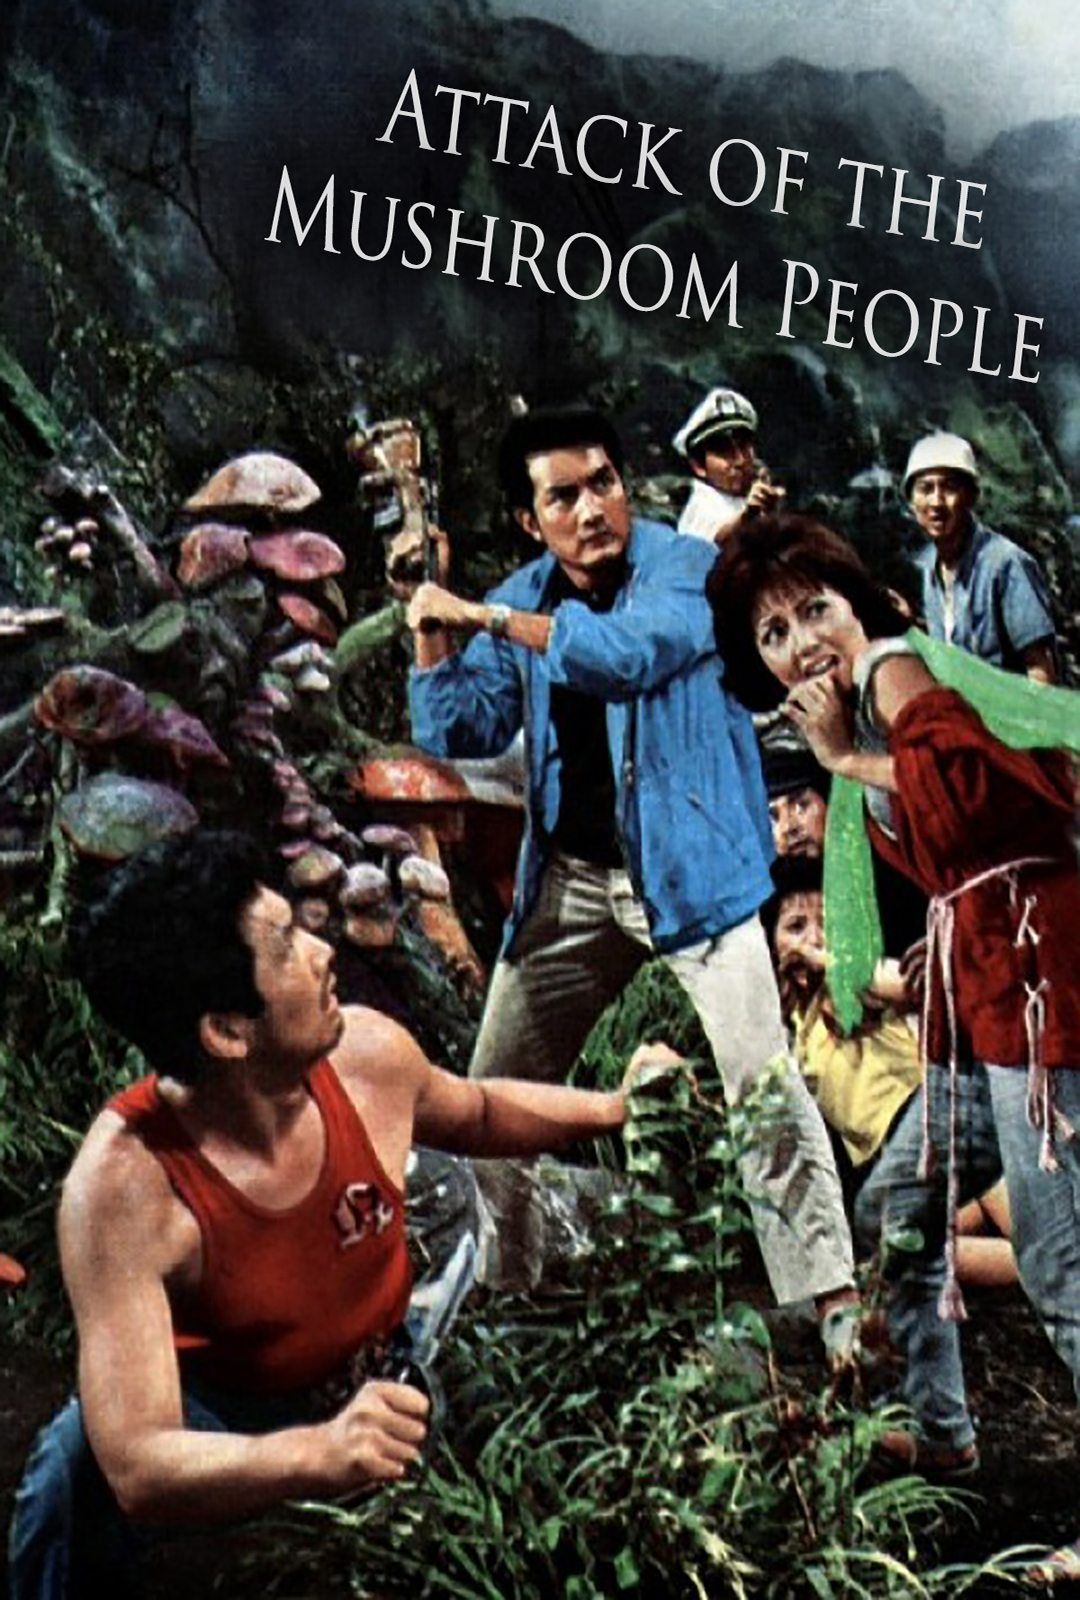 'Attack of the Mushroom People' Now Available on Amazon Prime